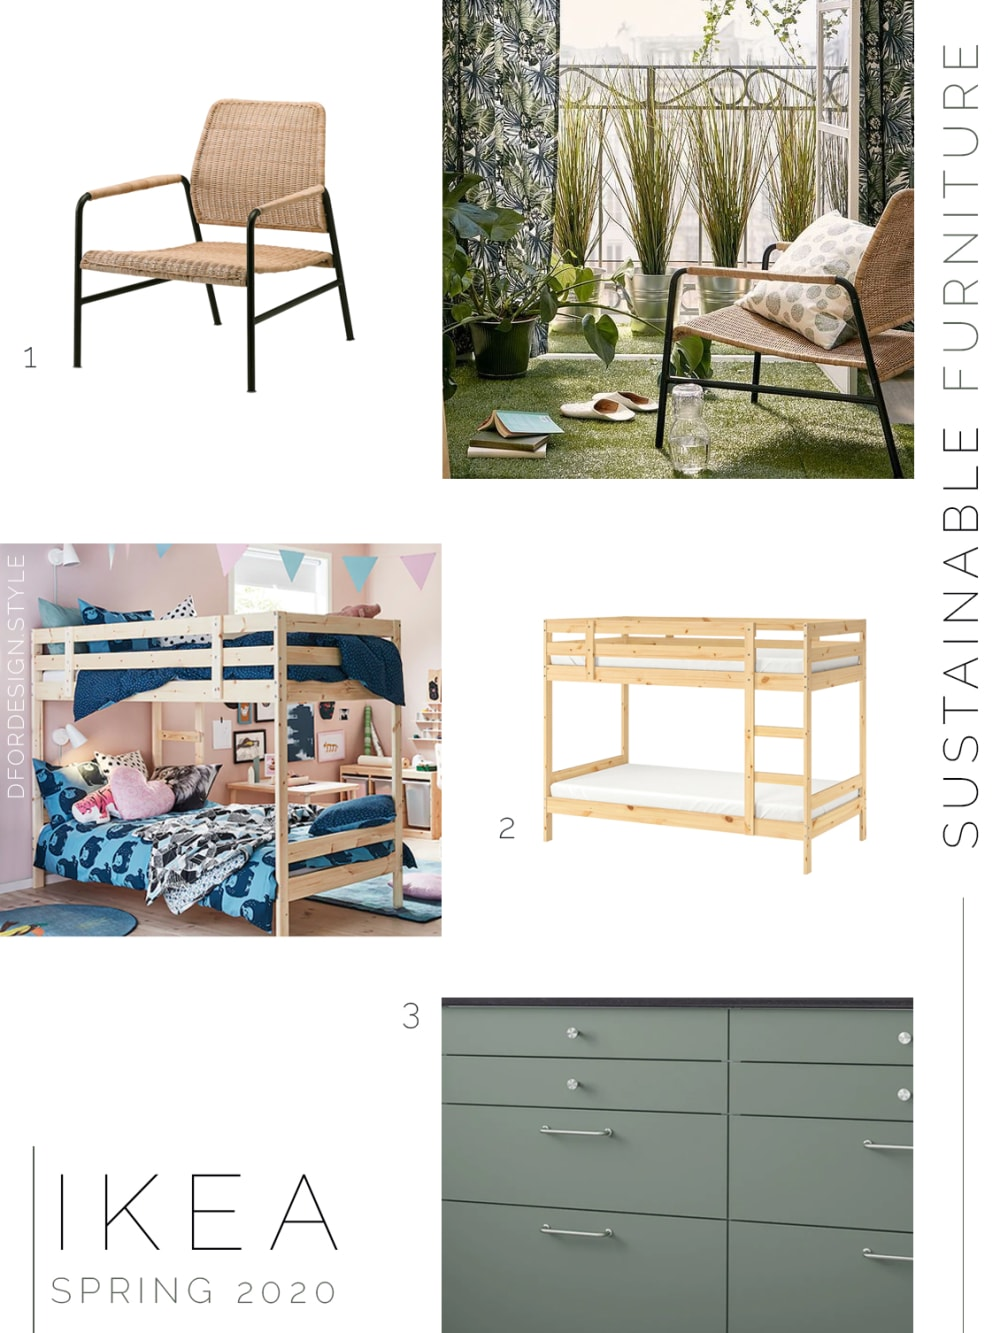 """Moodboard showing sustainable furniture launched in IKEA spring catalogue 2020.<span class=""""sr-only""""> (opened in a new window/tab)</span>"""